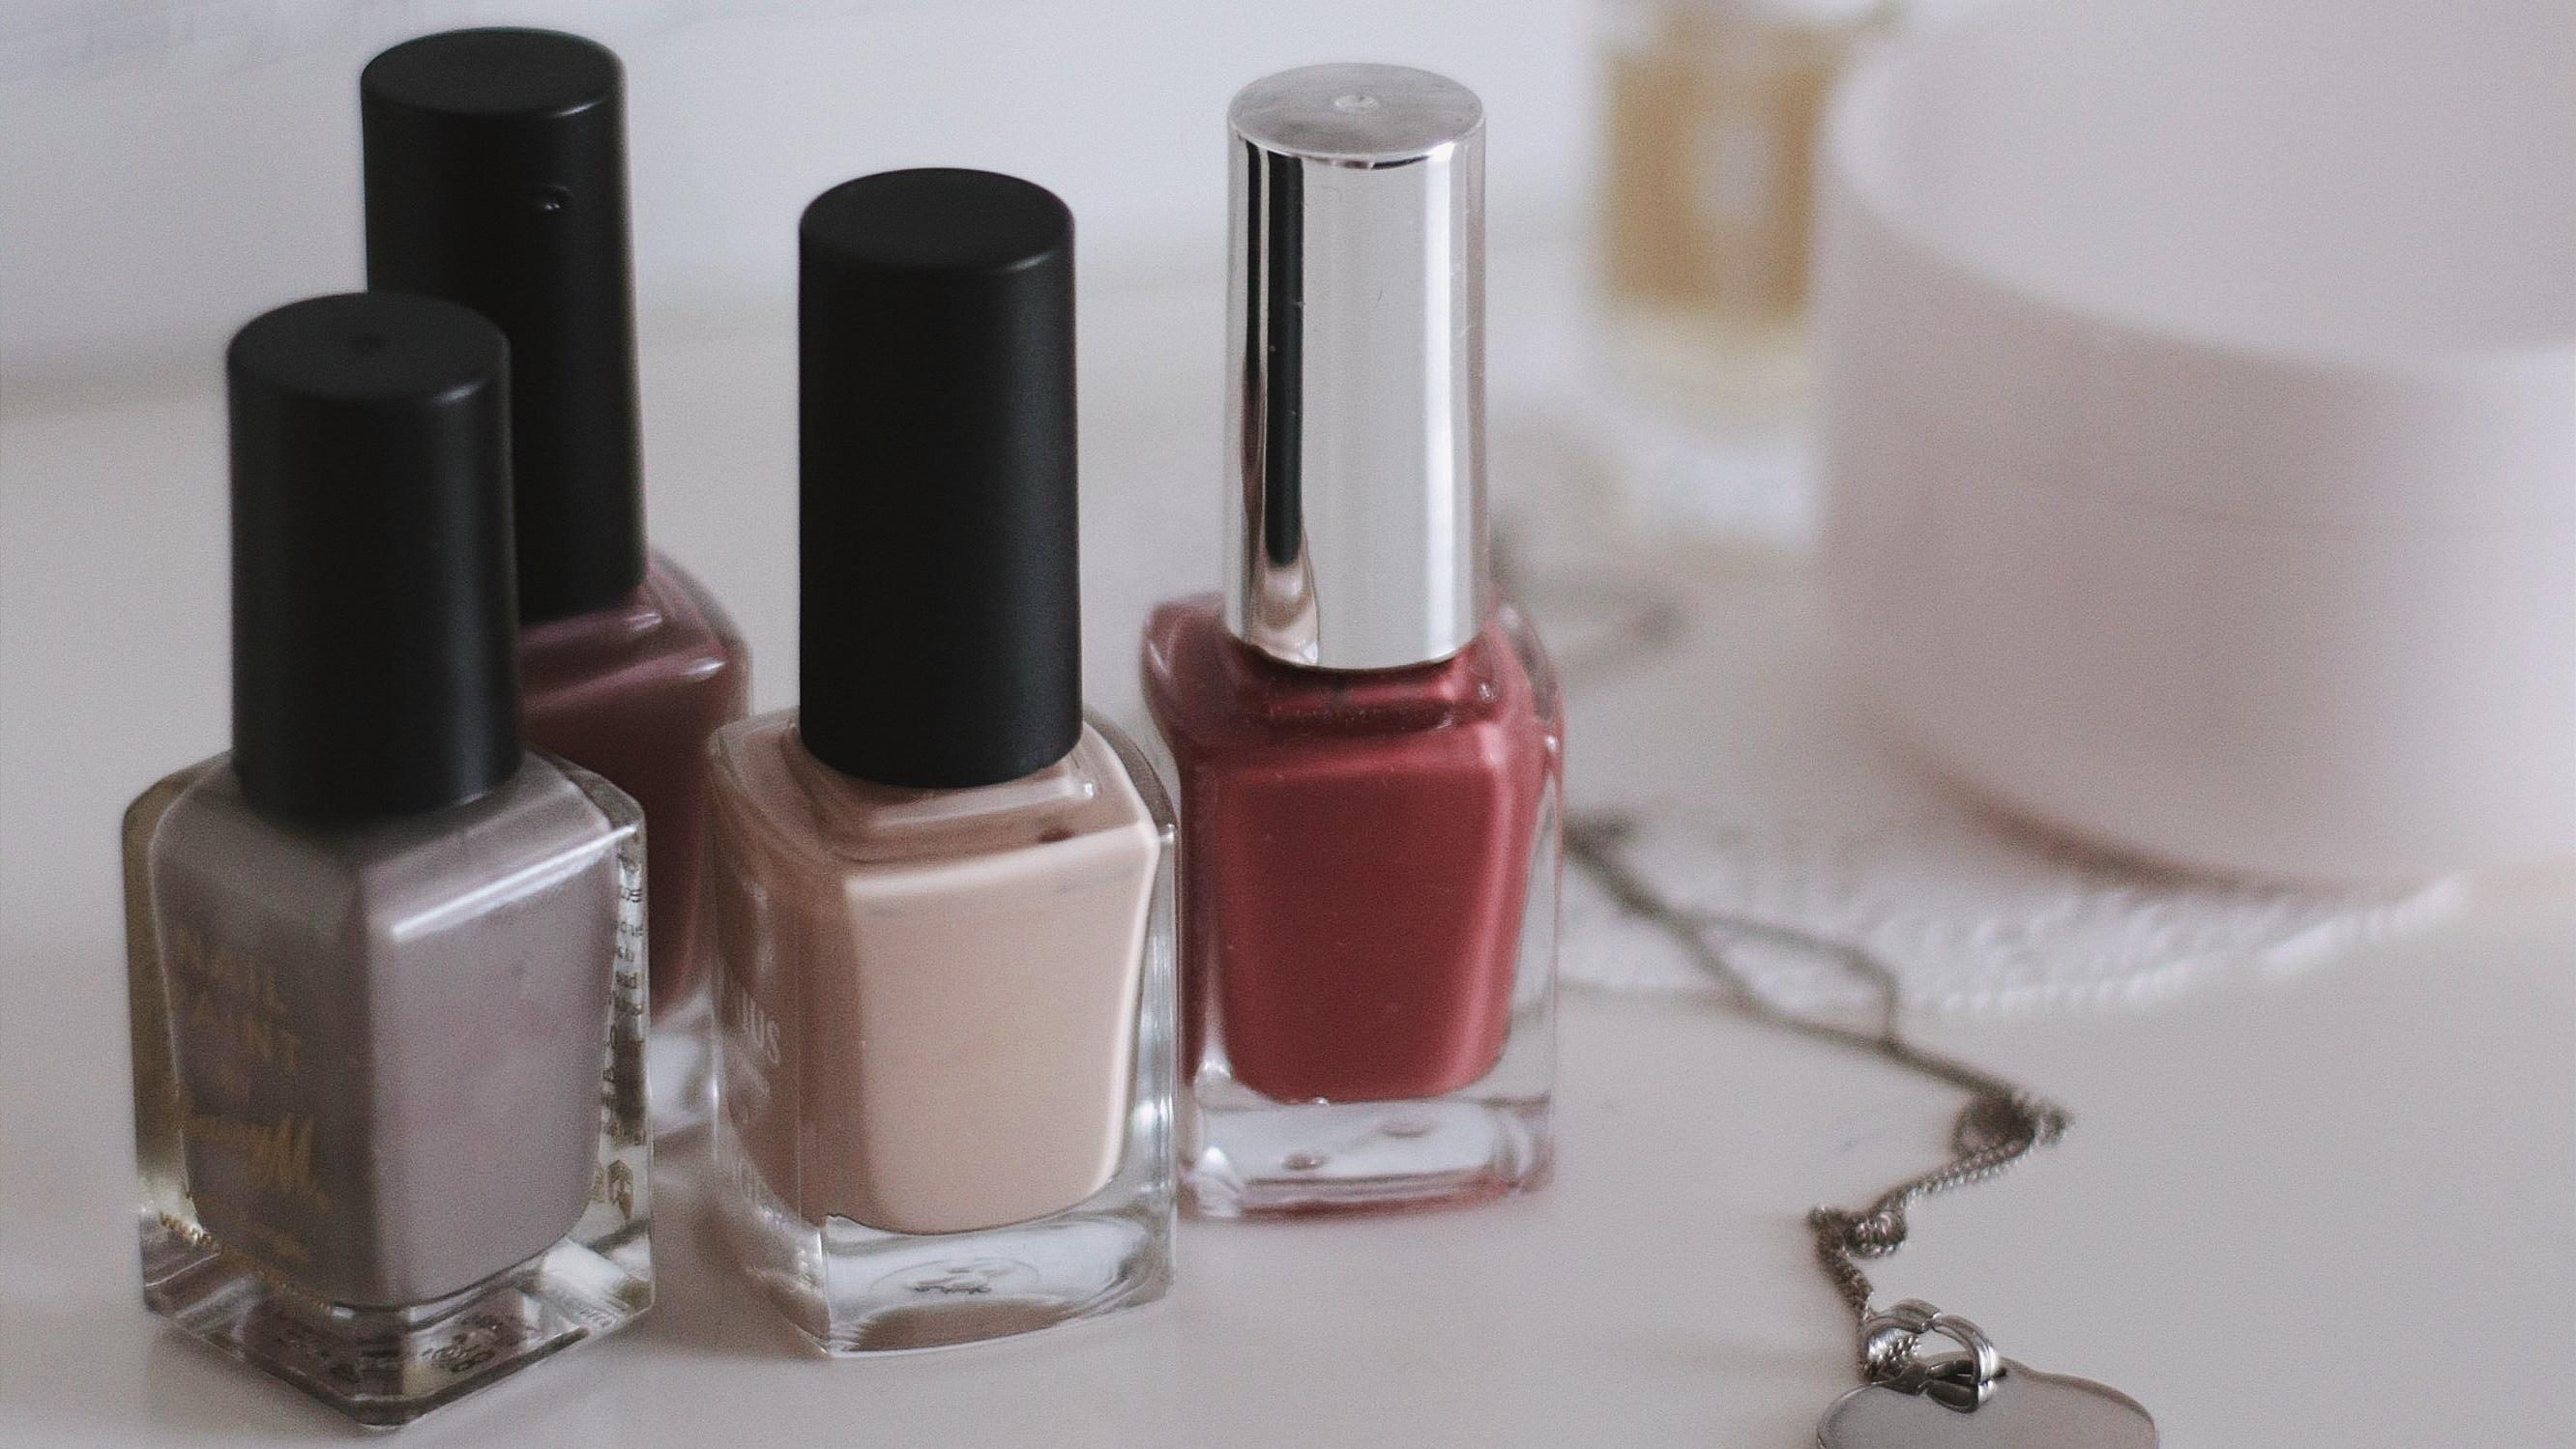 French Nails selber machen - so geht's